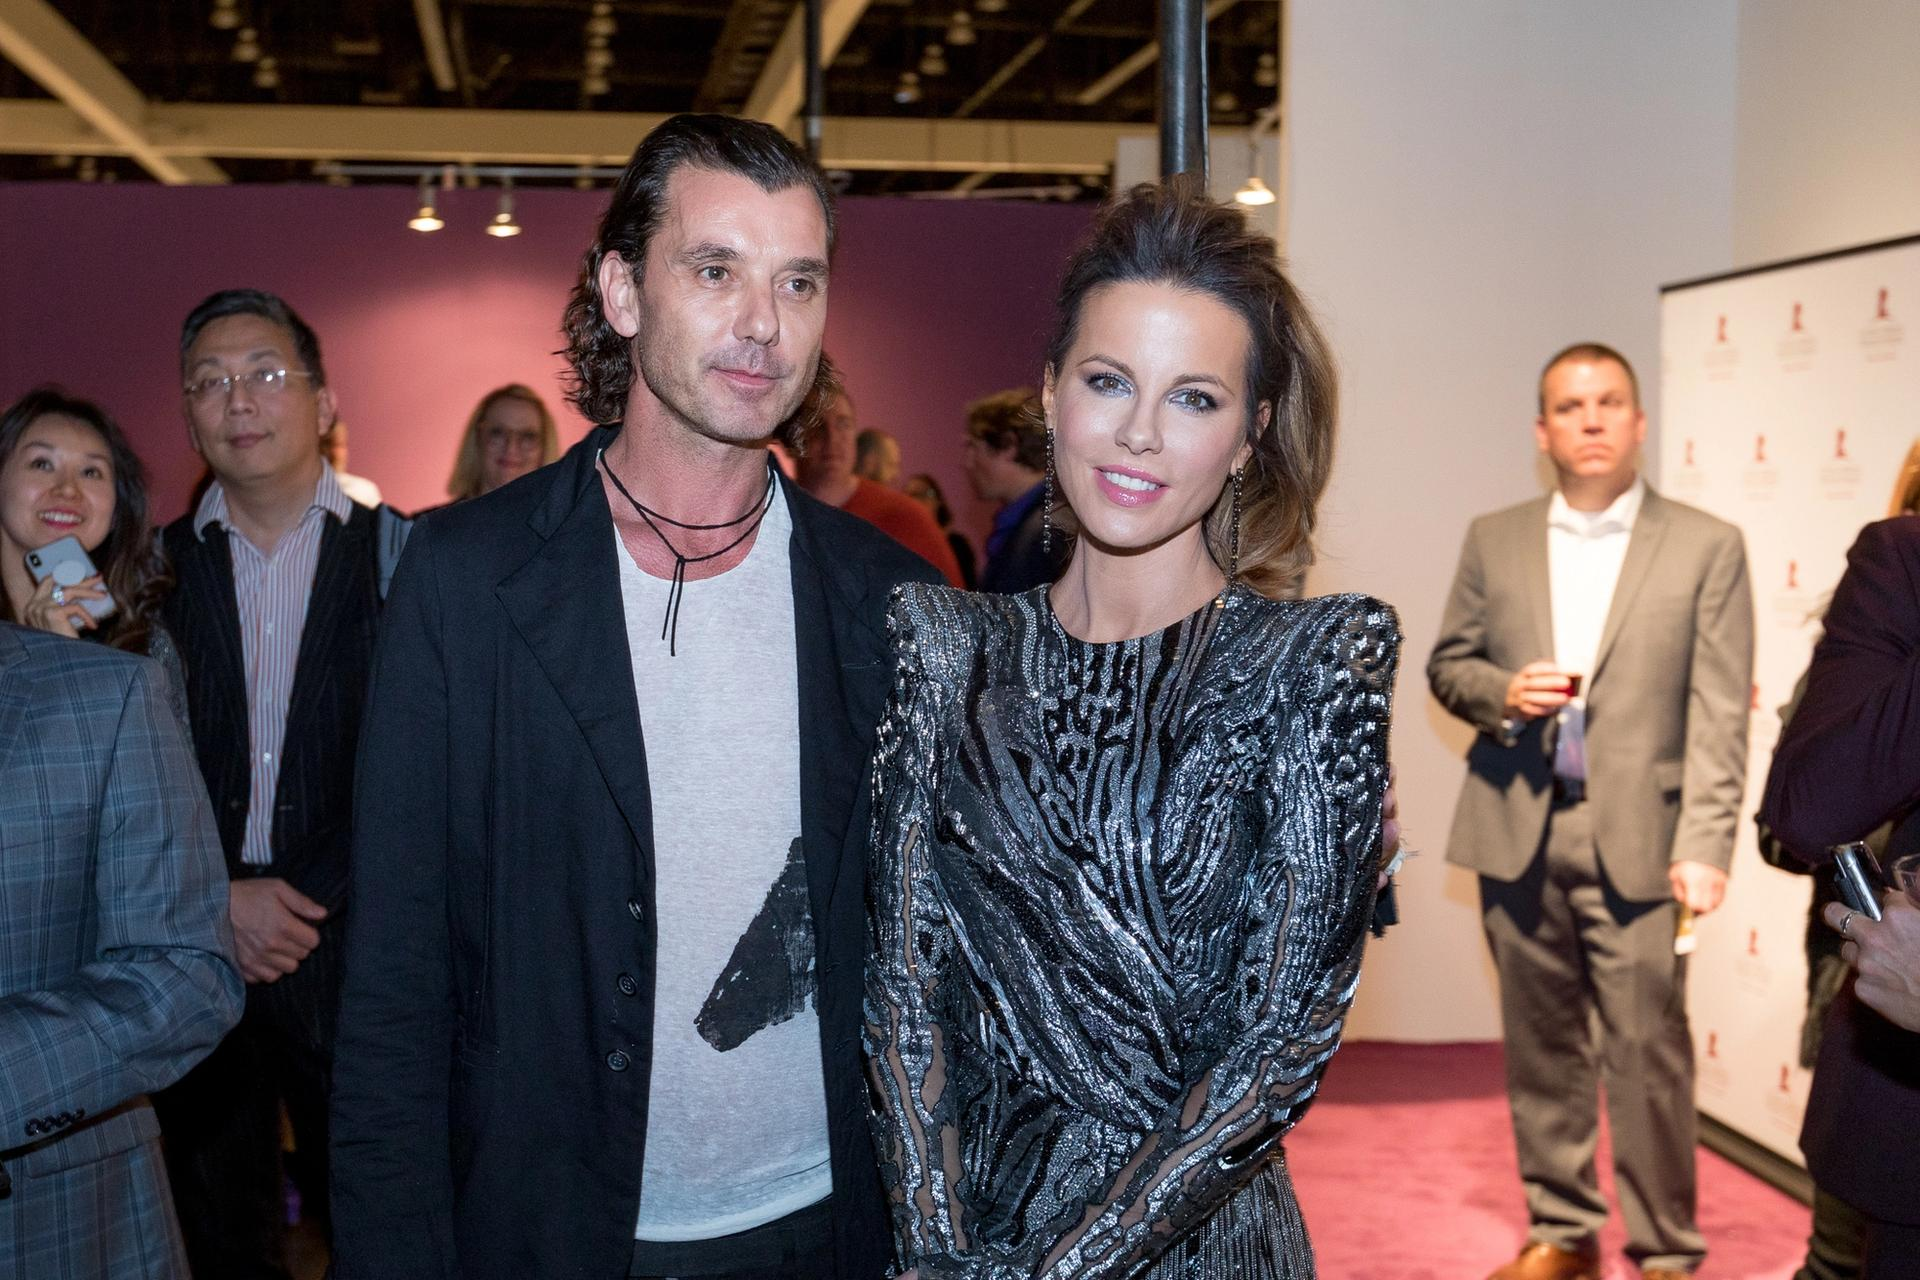 Gavin Rossdale and Kate Beckinsale at the LA Art Show